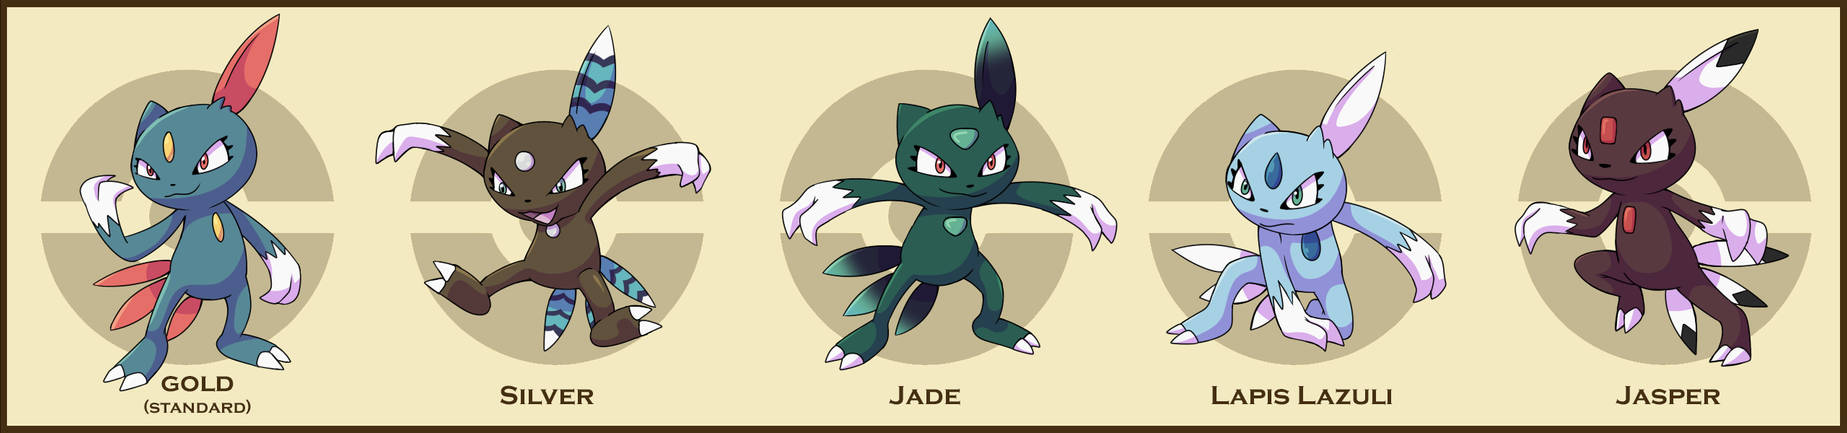 PokemonSubspecies: Sneasel